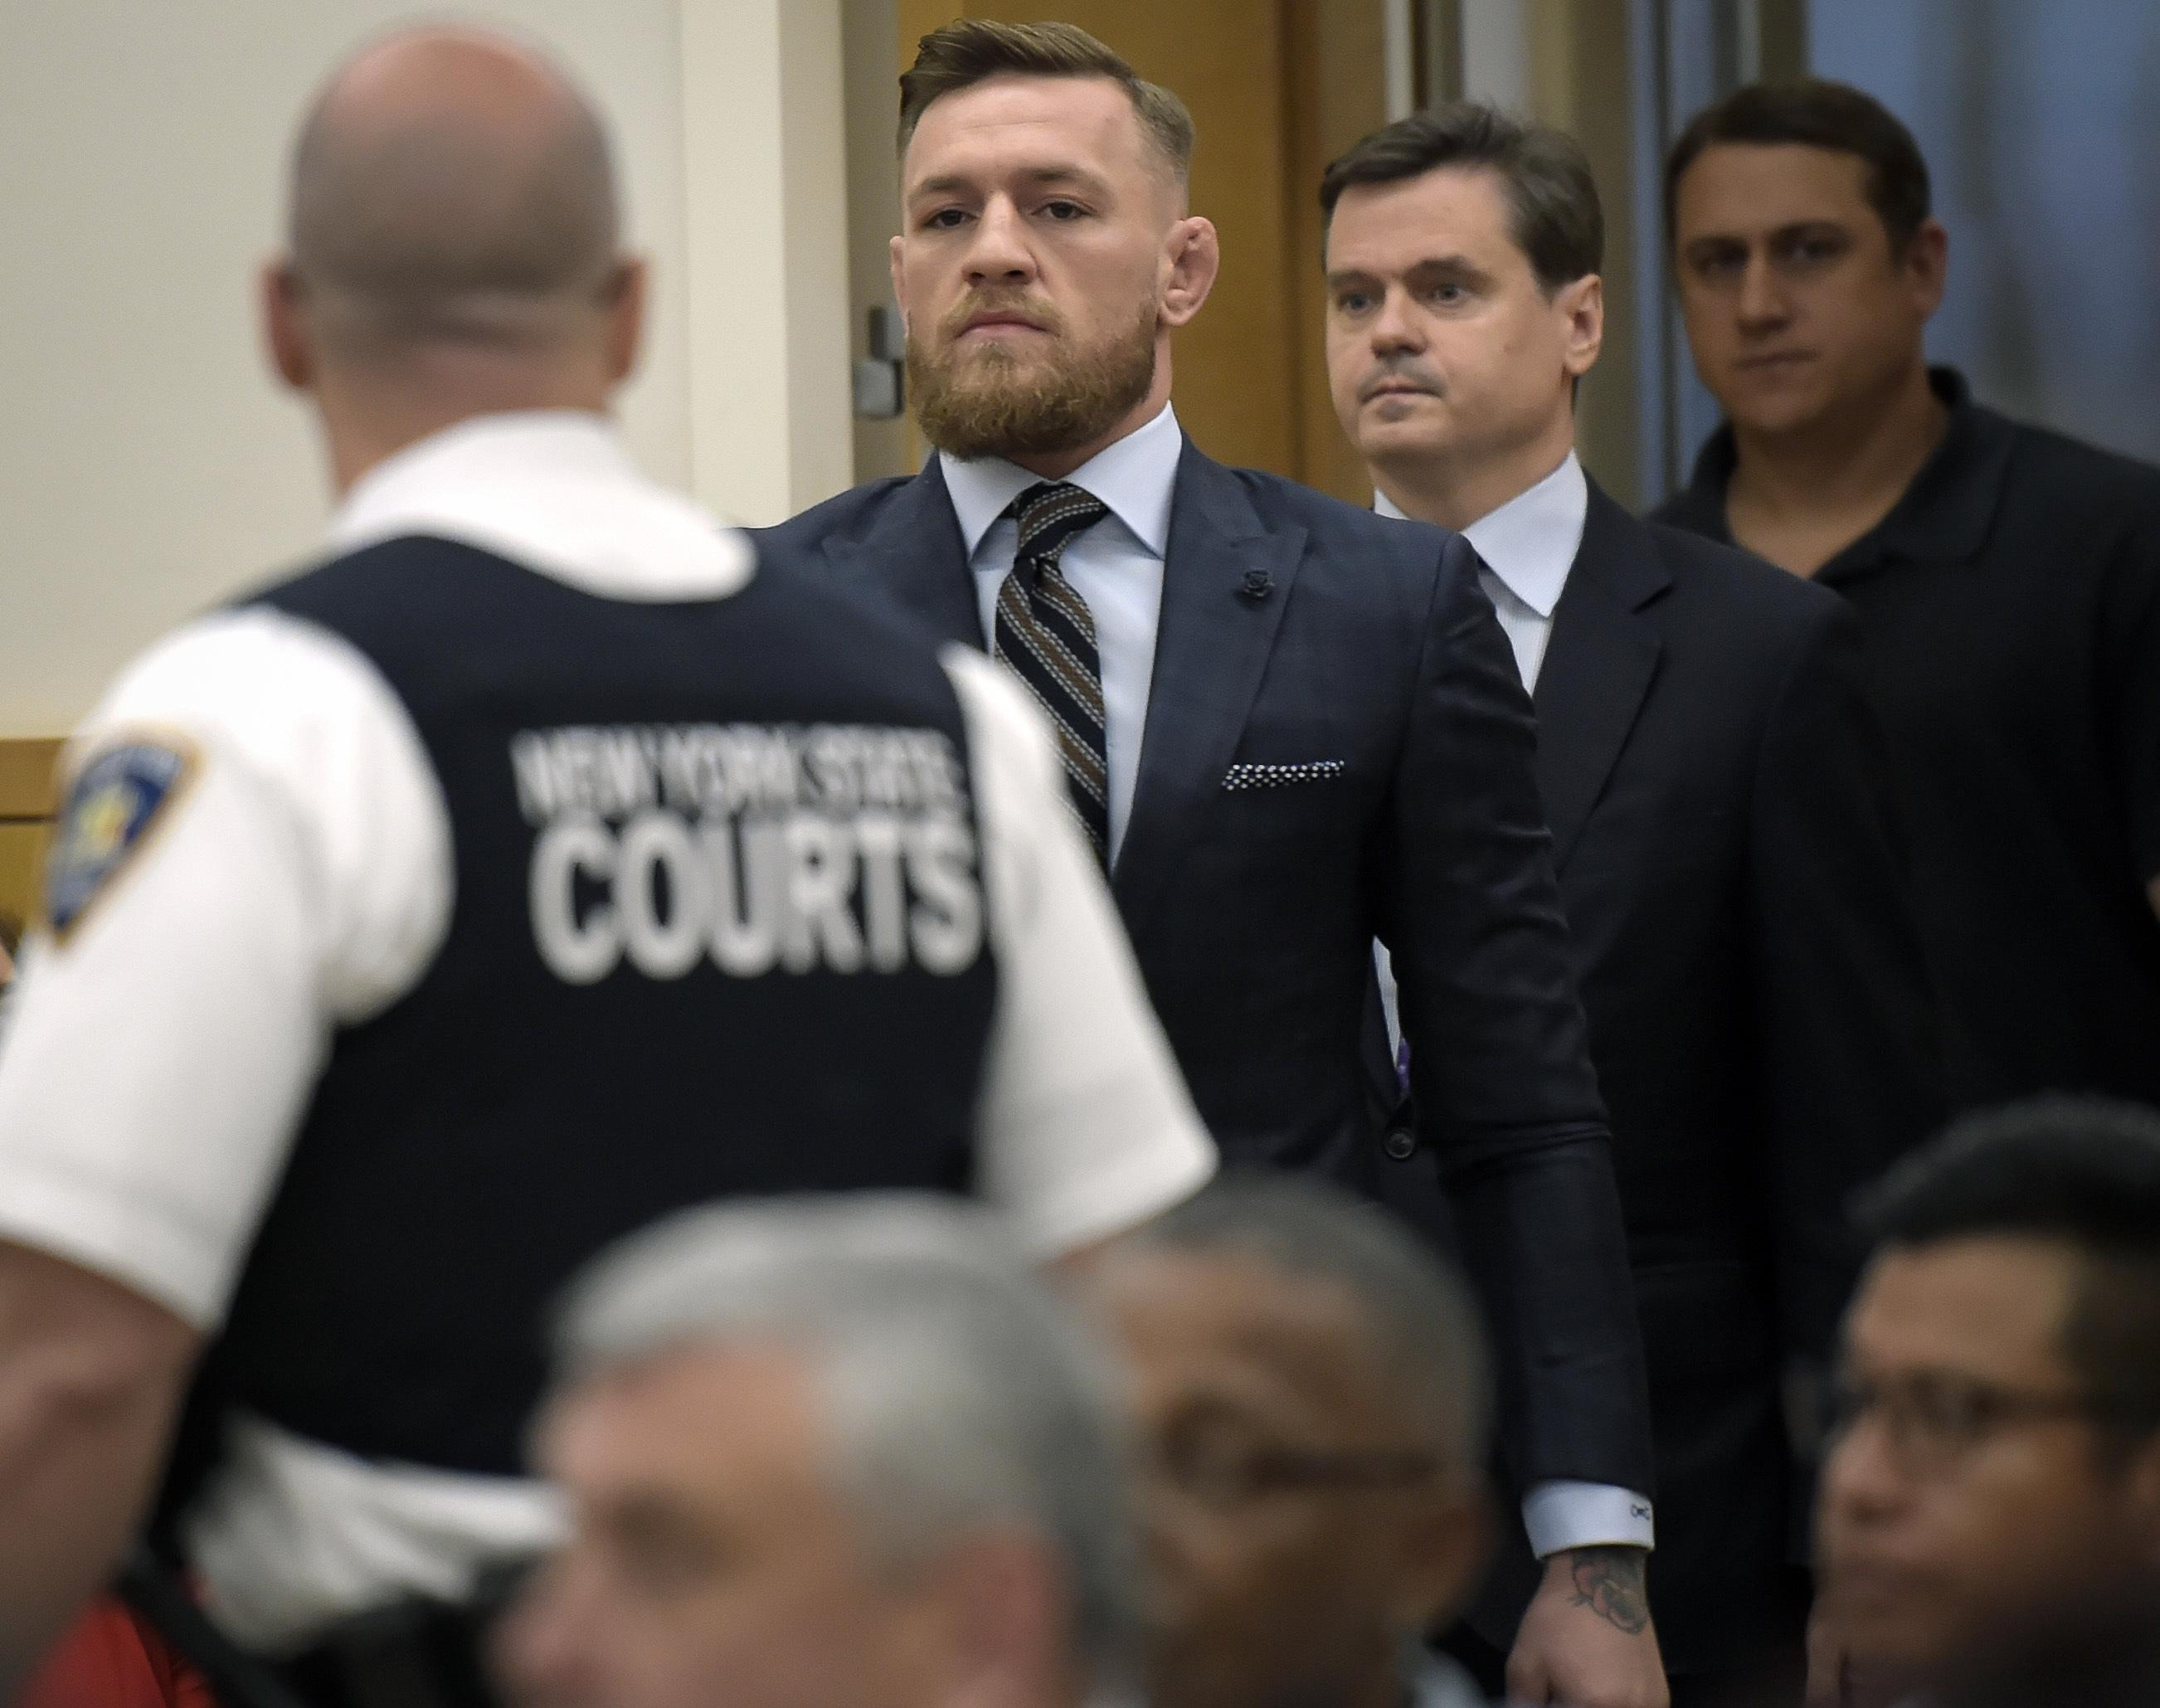 McGregor was only in the court room for a few minutes